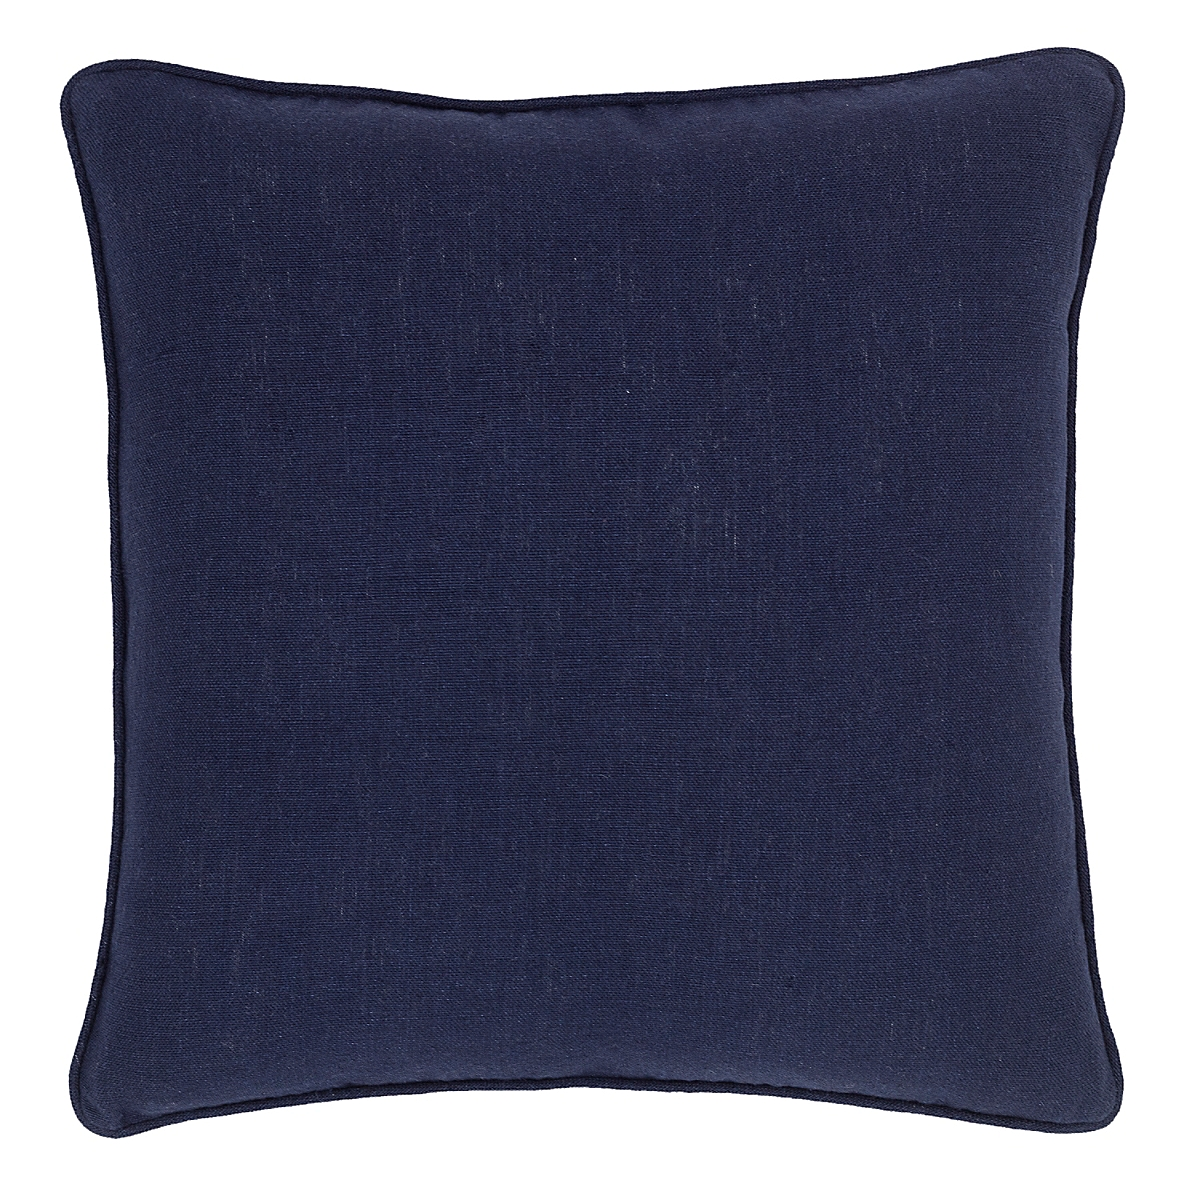 Stone Washed Linen Indigo Decorative Pillow